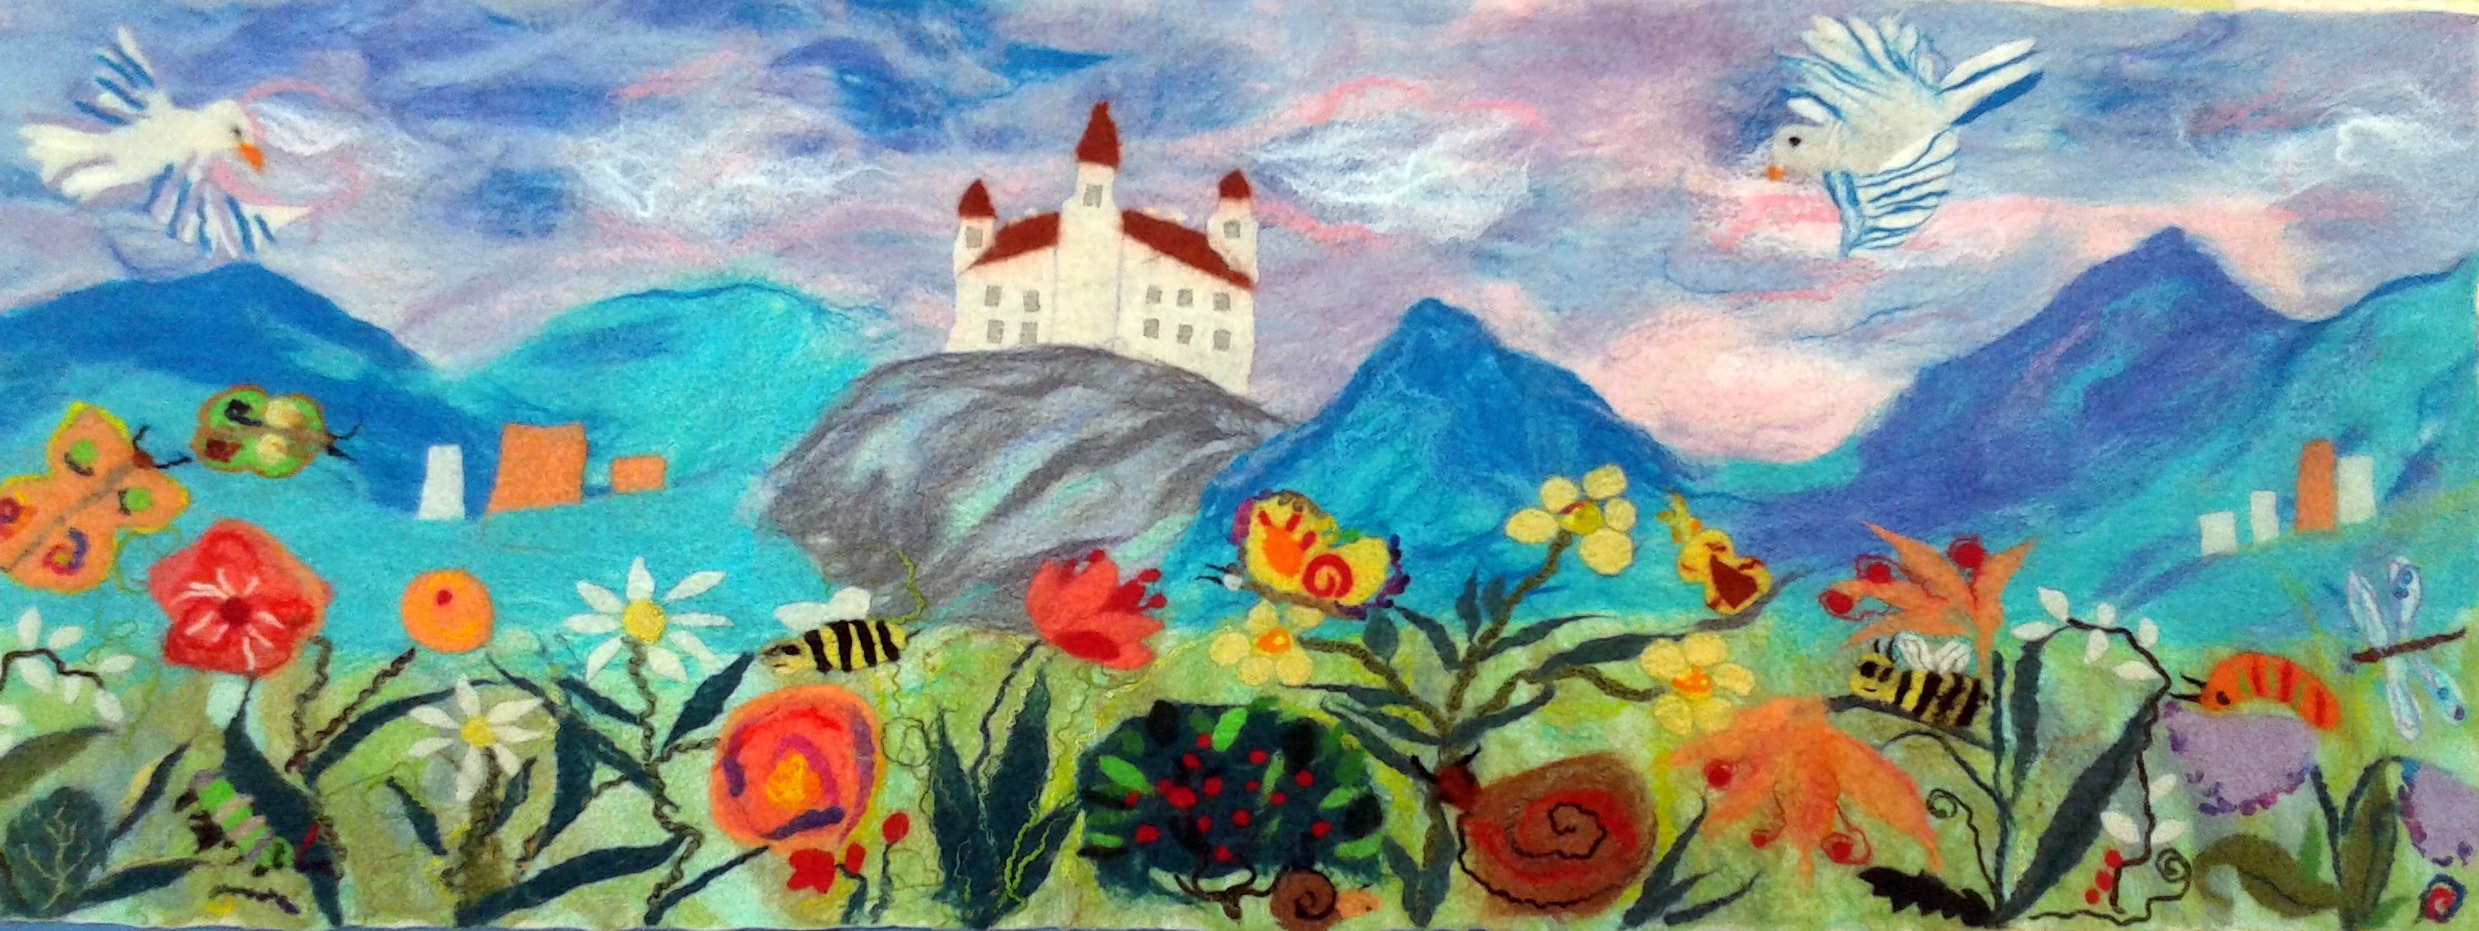 Felted Wall Hanging made by the pupils from Bratislava